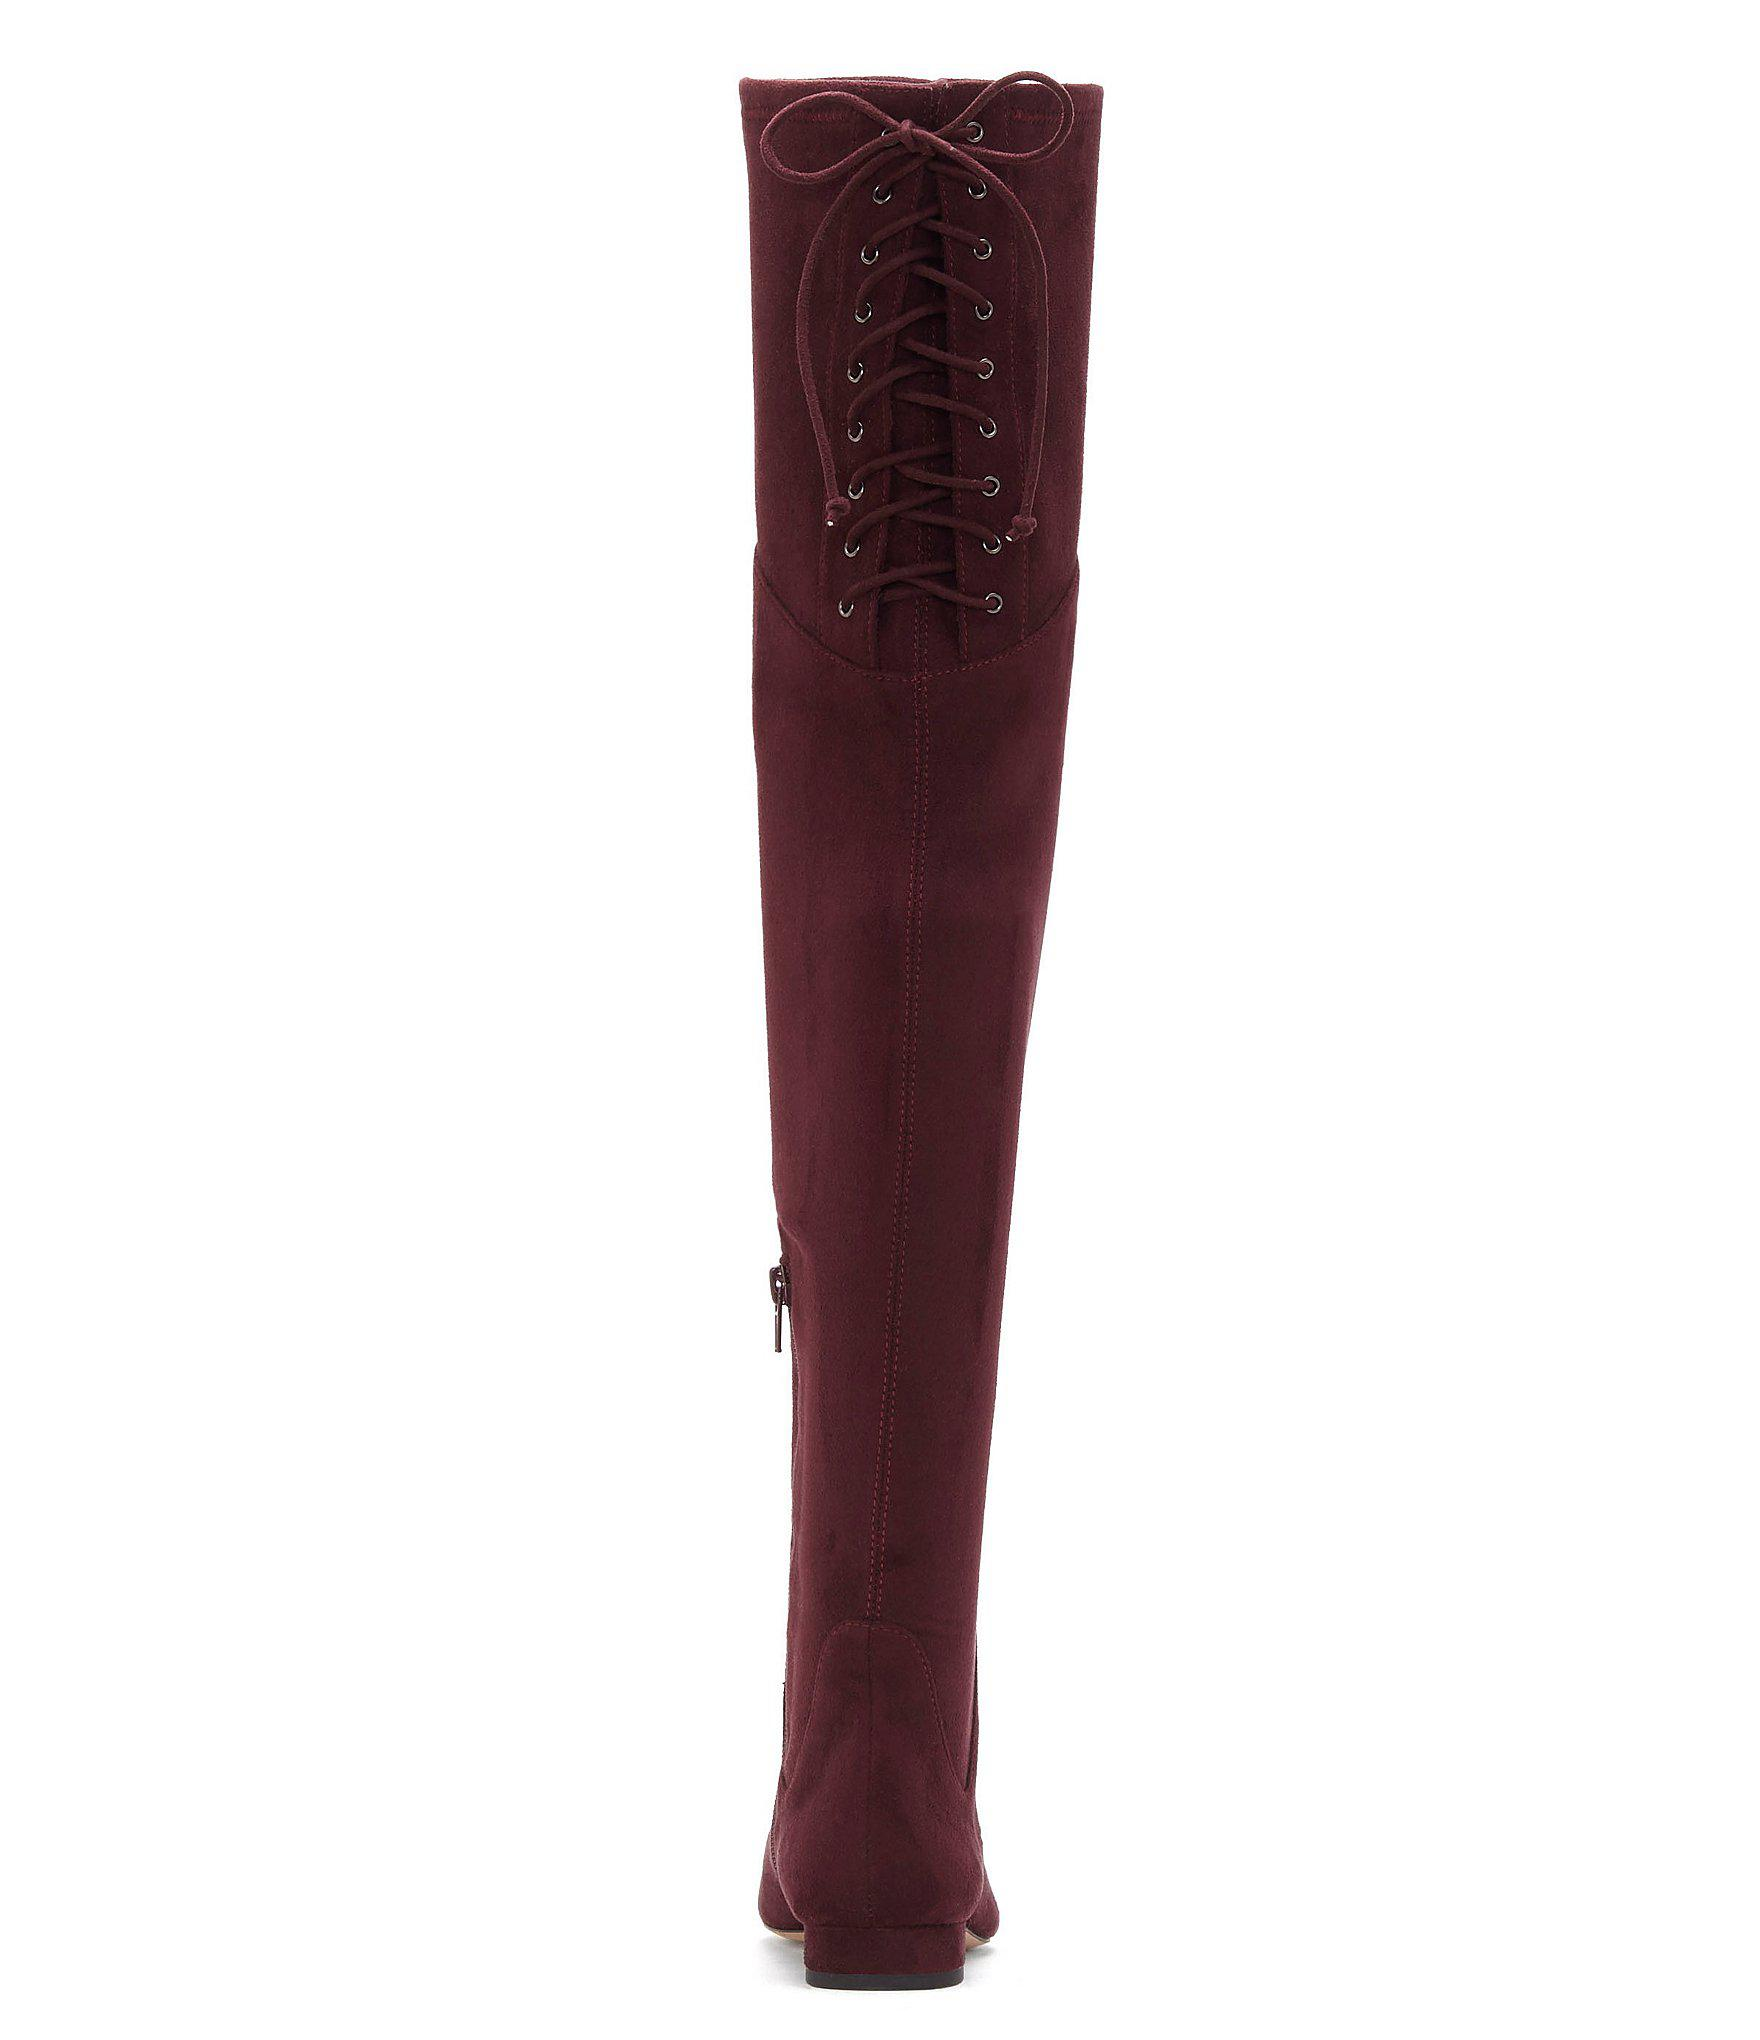 9c7a5dc922e Lyst - Enzo Angiolini Meana Over-the-knee Block Heel Boots in Red